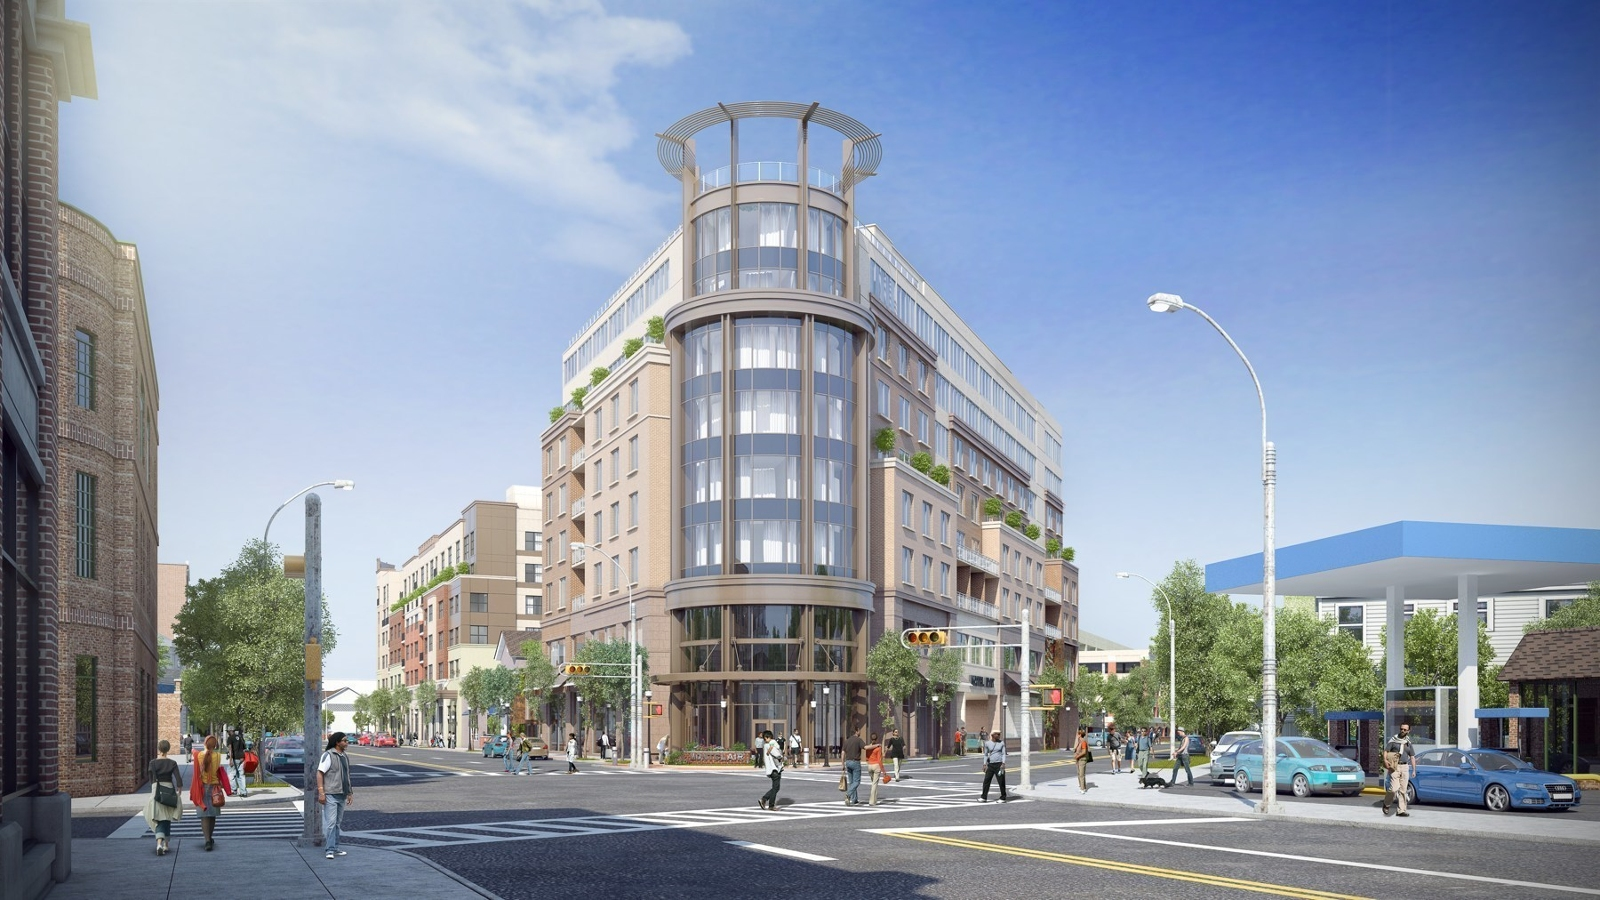 The mc luxury boutique hotel breaks ground in montclair nj for Luxury boutique accommodation